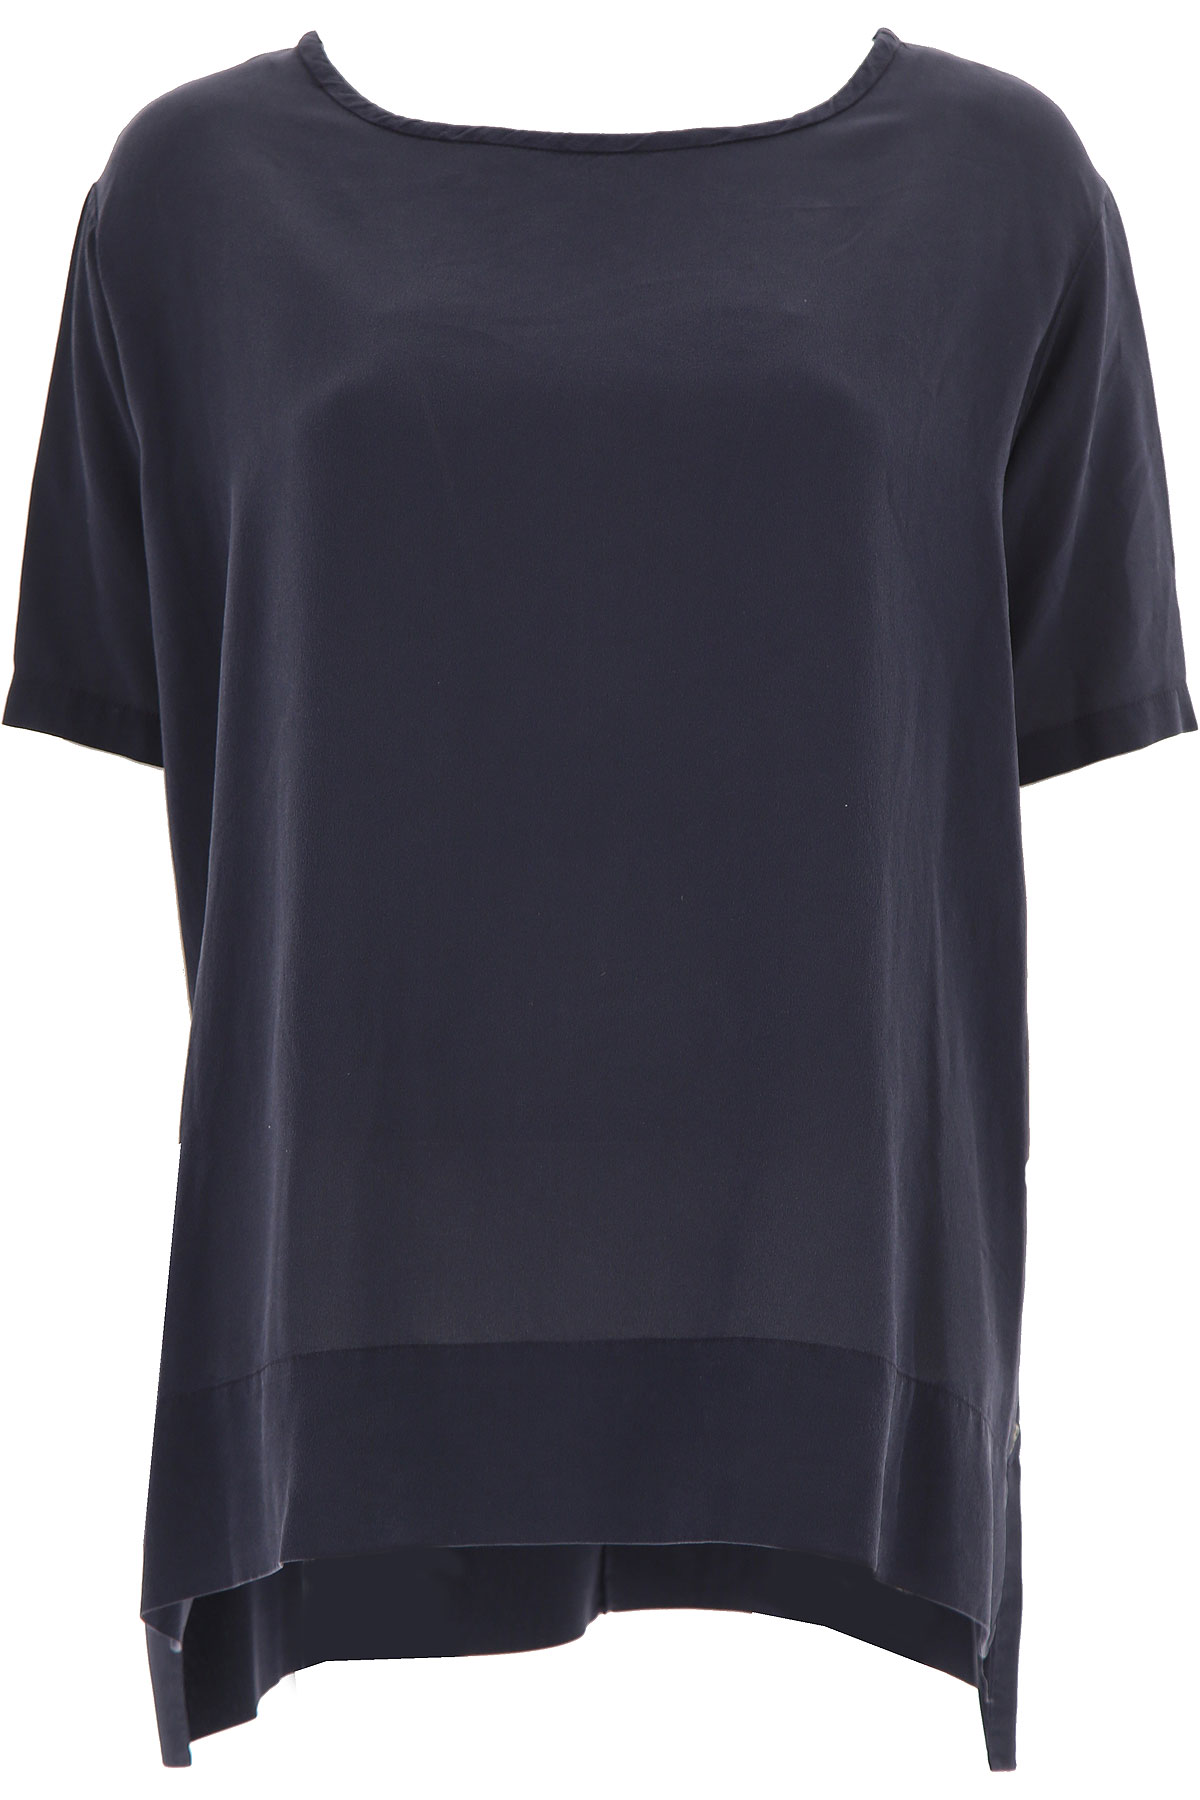 Image of Ottodame Top for Women On Sale, Blue, Silk, 2017, US 4 - I 40 - GB 8 - F36 US 8 - I 44 - GB 12 - F 40